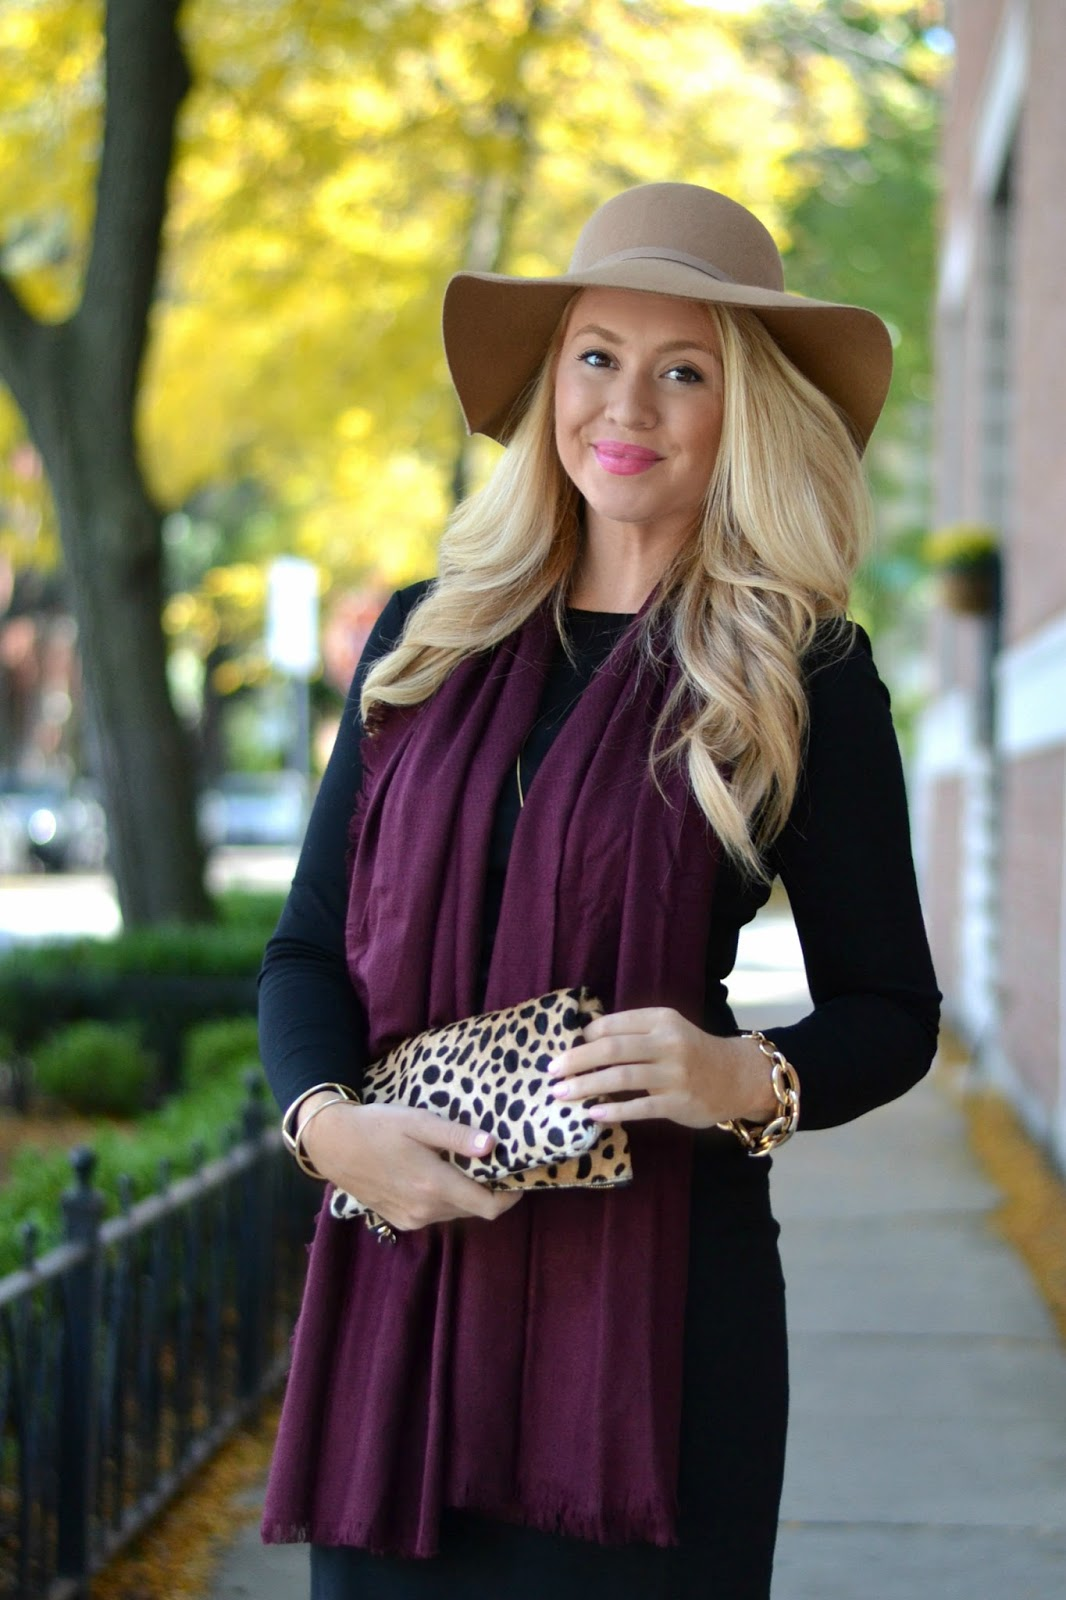 how-to-wear-a-floppy-hat-for-fall